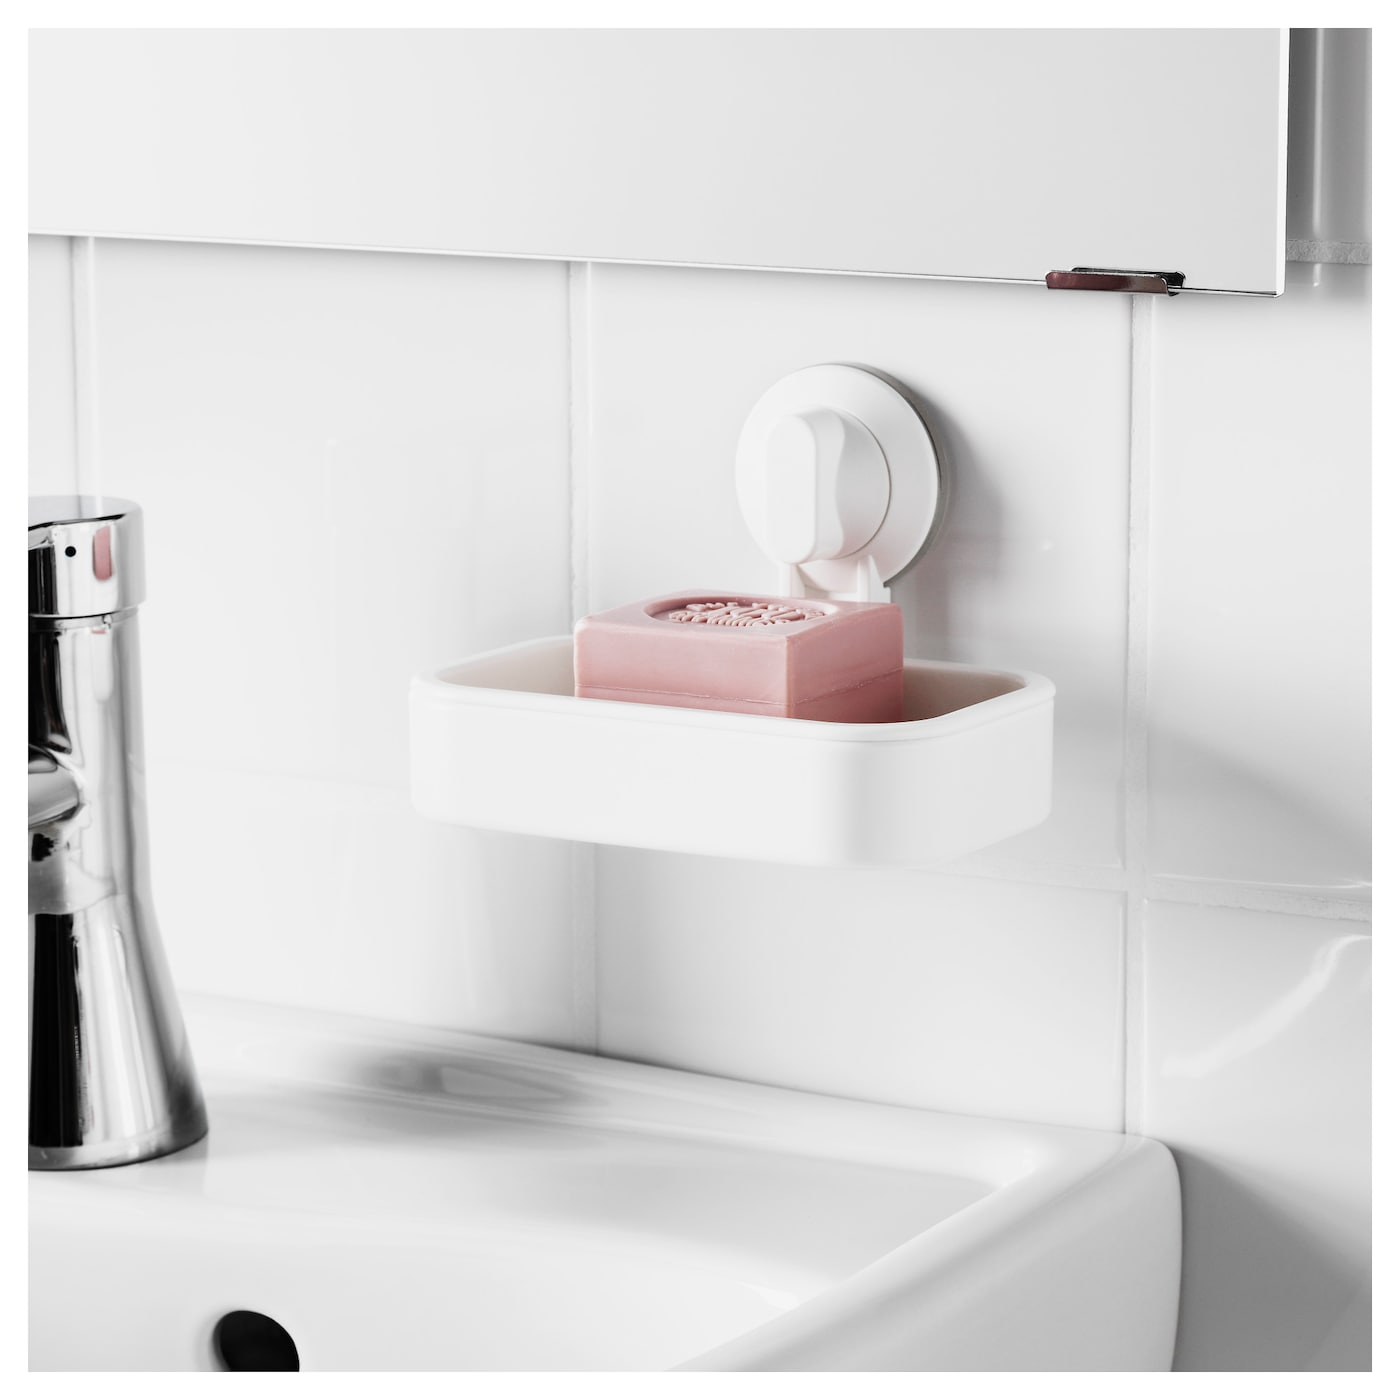 IKEA STUGVIK soap dish with suction cup With a suction cup that grips smooth surfaces.